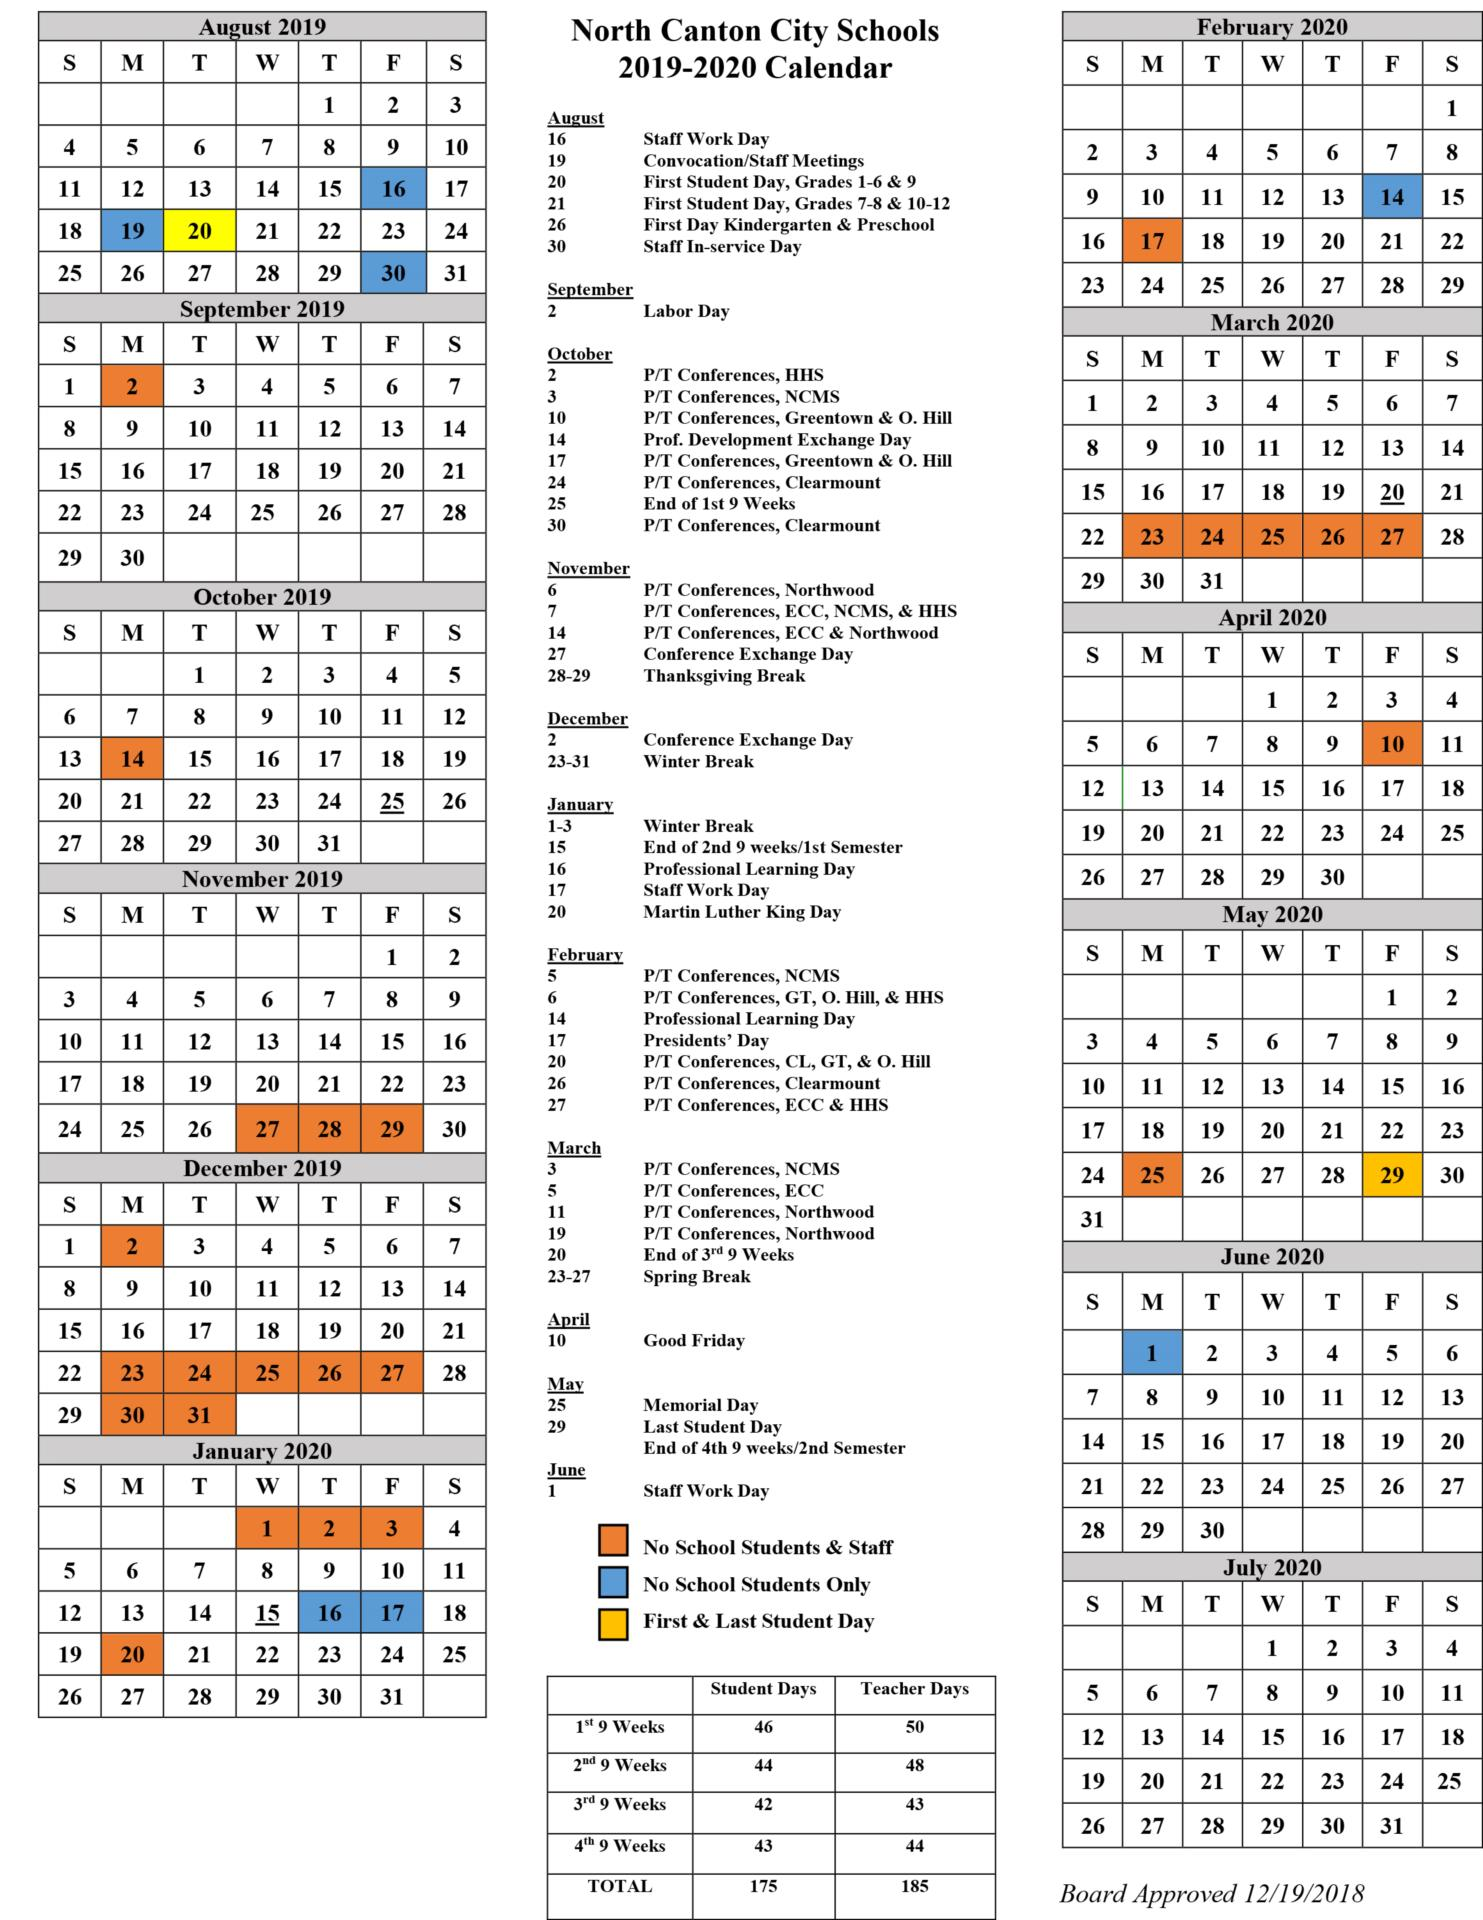 photo of a calendar listing all the dates for the 2019-20 school year